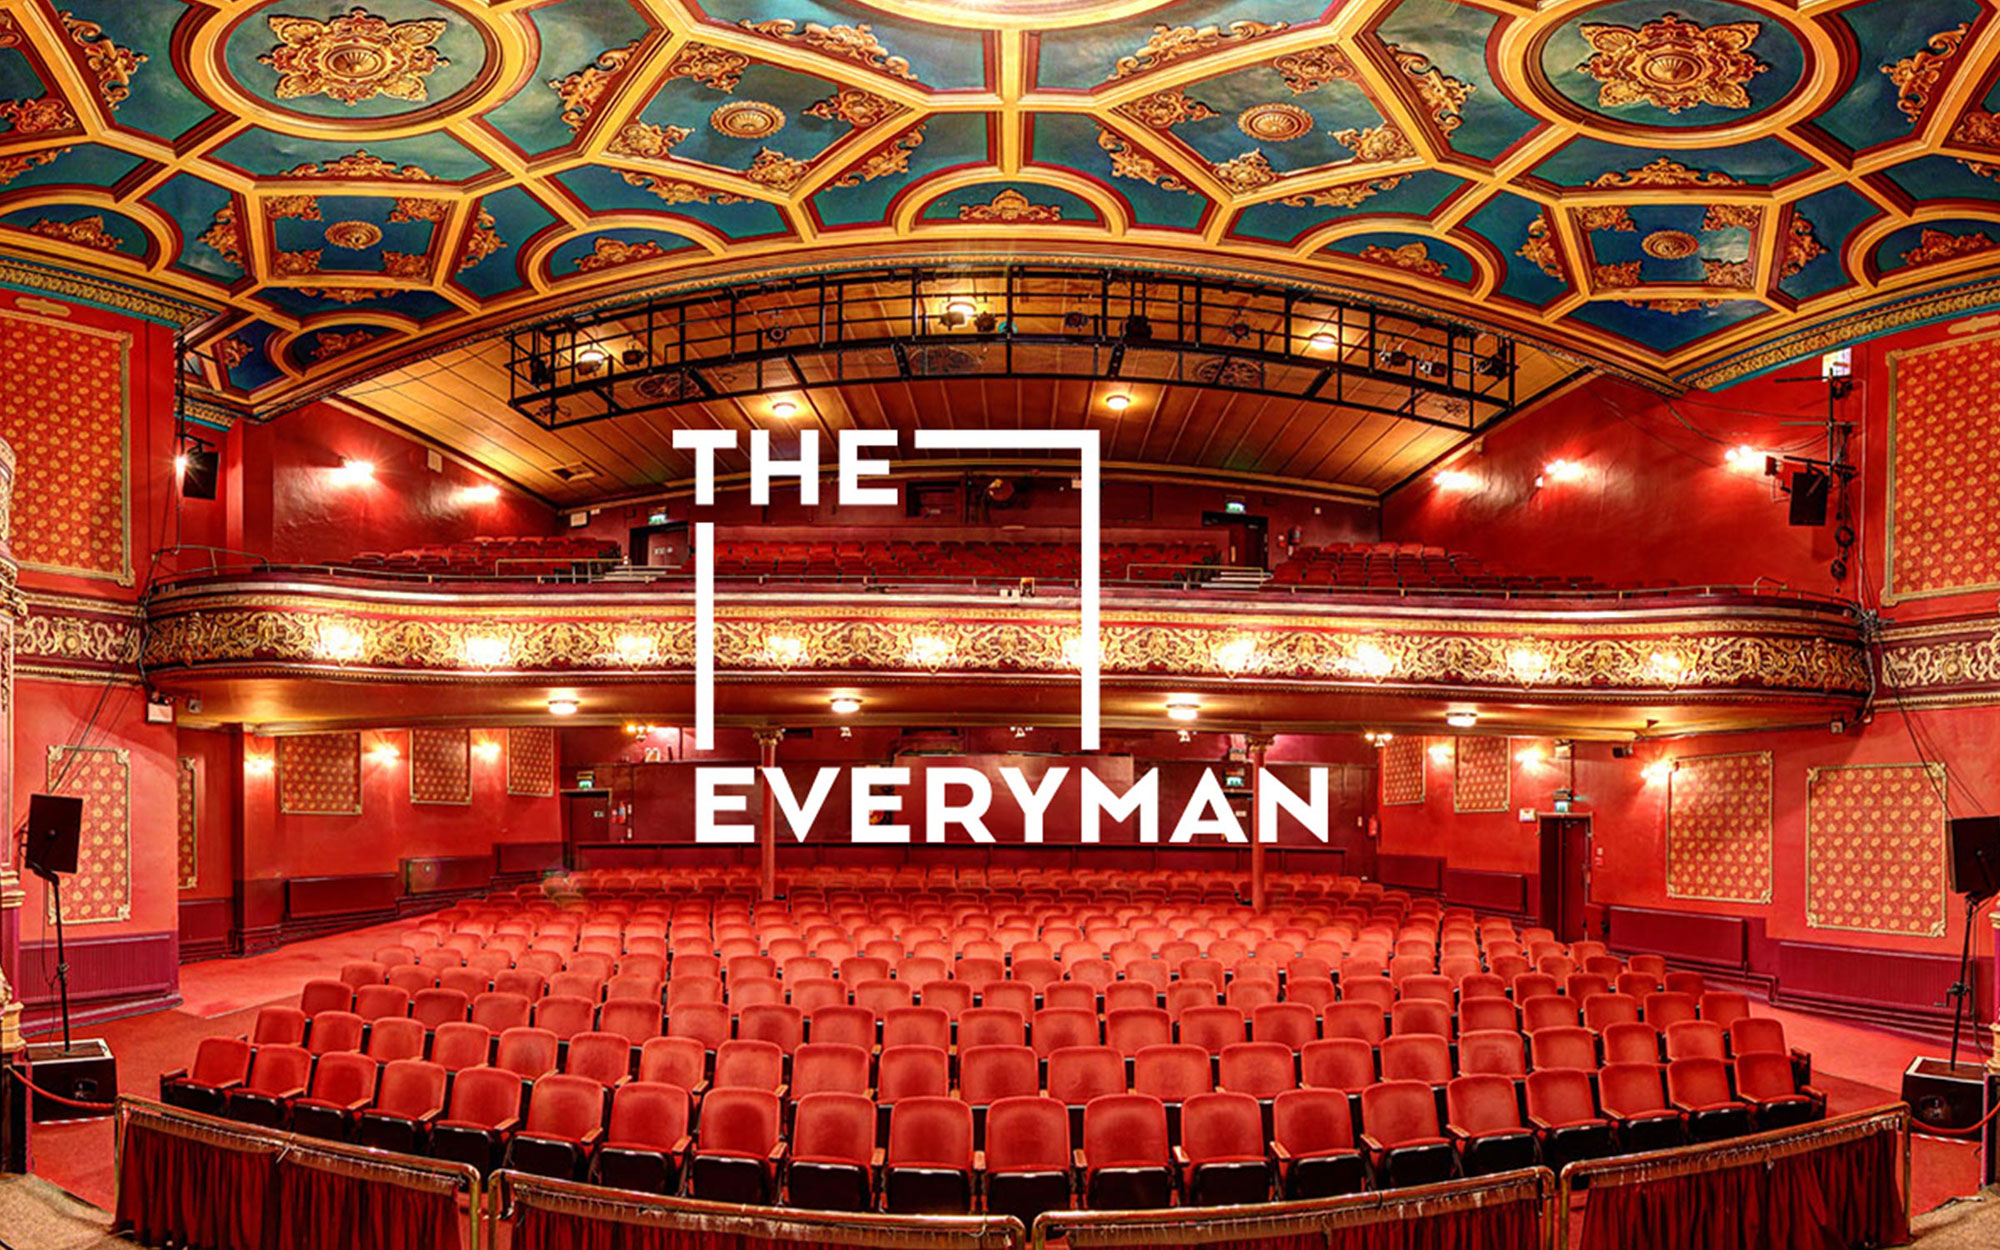 Cover image: The Everyman